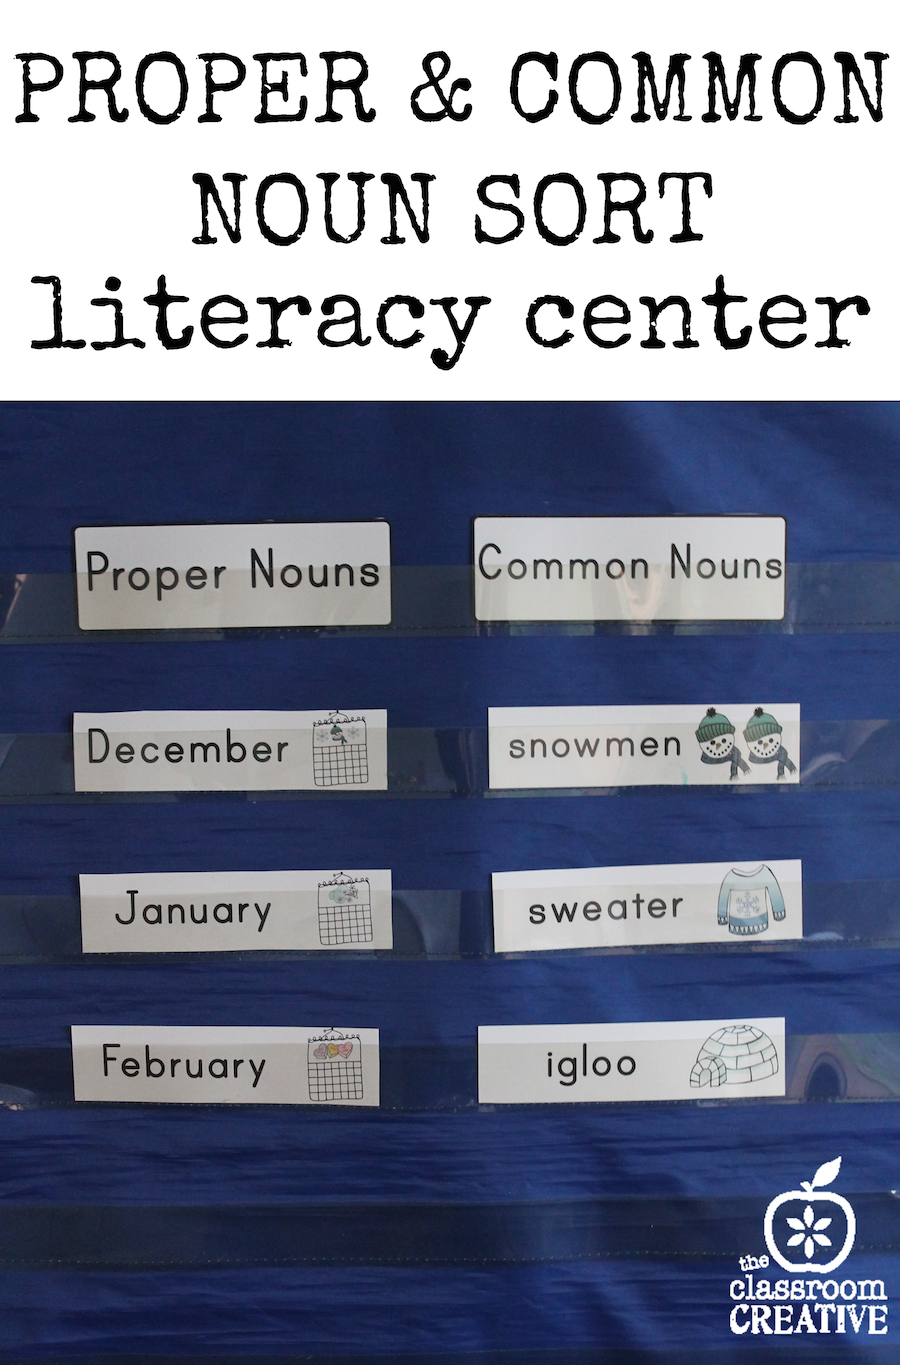 proper and common noun sort literacy center the classroom creative